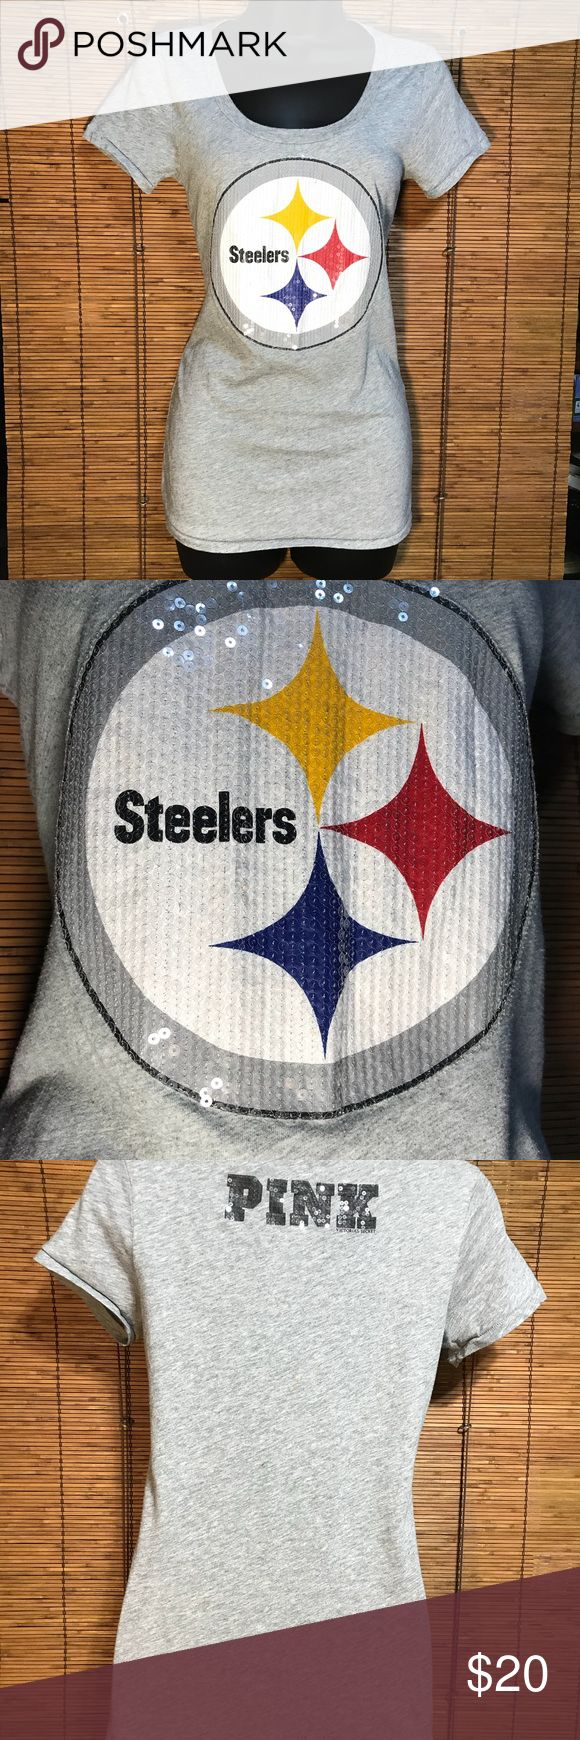 """PINK Victoria's Secret Pittsburgh Steelers T Shirt Steelers logo on front has sequins. """"PINK"""" in sequins on the back. PINK Victoria's Secret Tops Tees - Short Sleeve"""